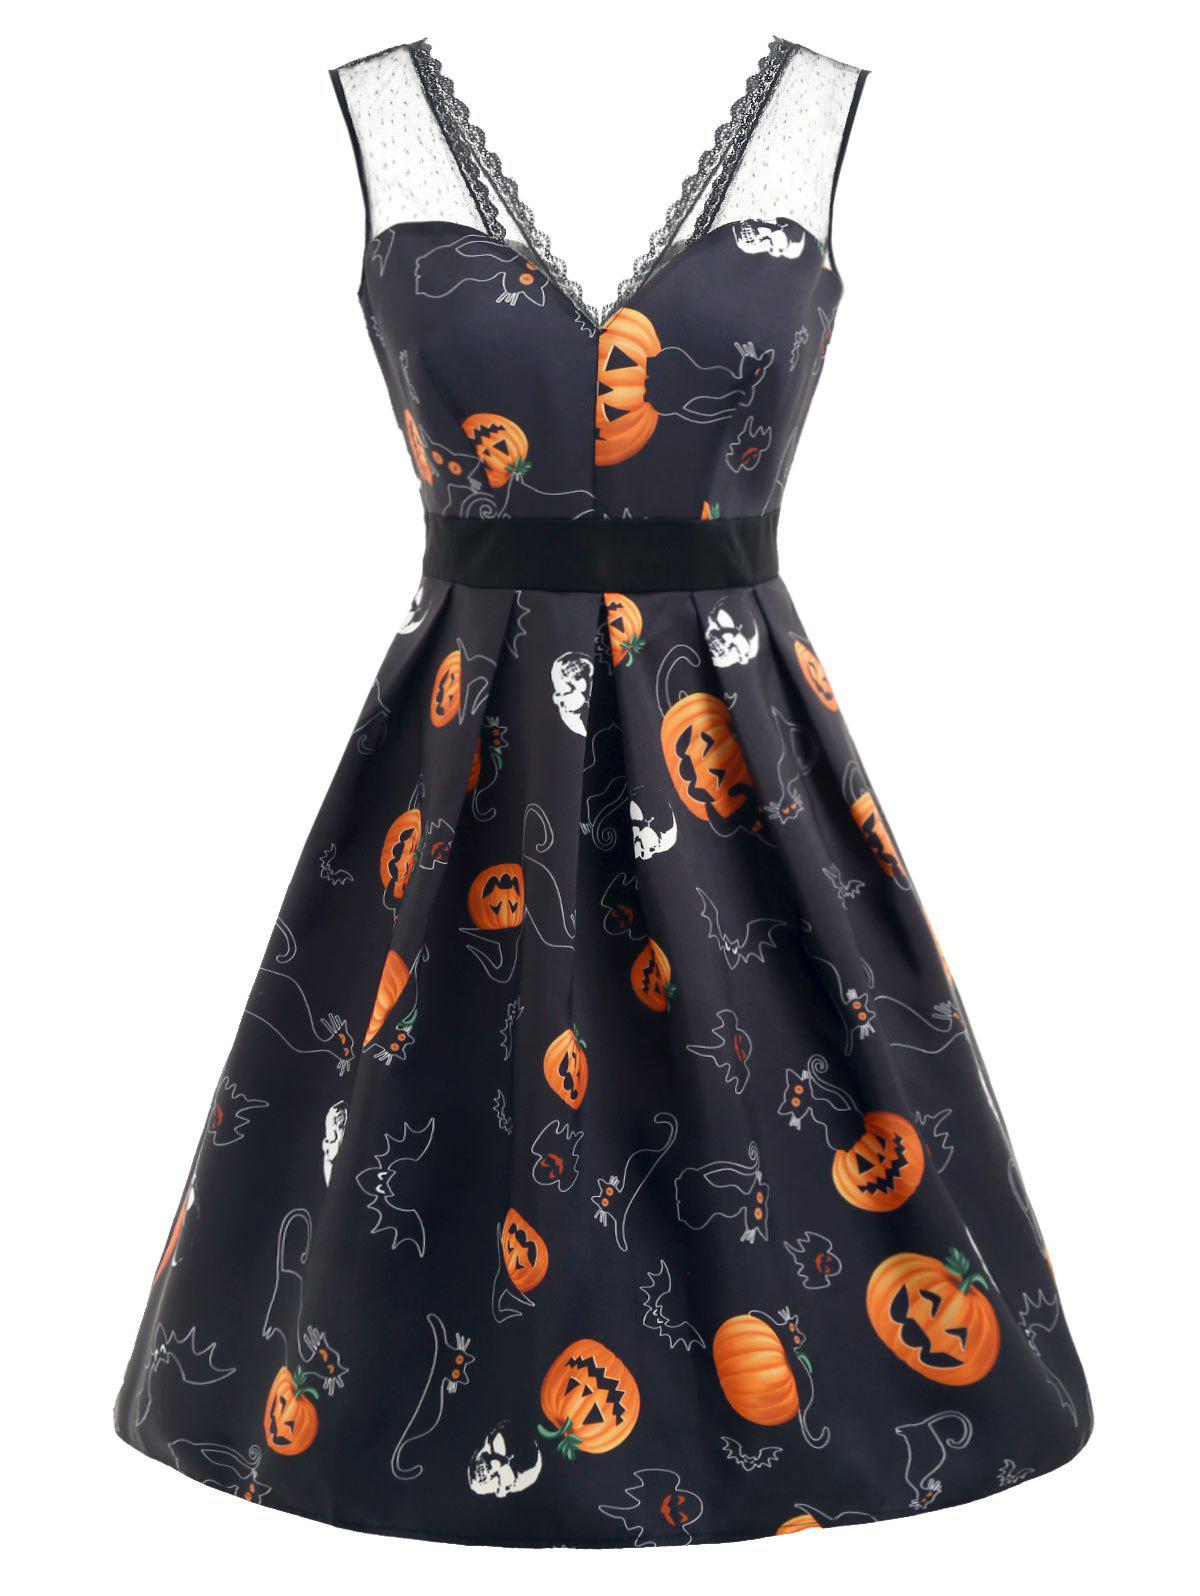 Shop Halloween Pumpkin Print Sleeveless Flare Dress